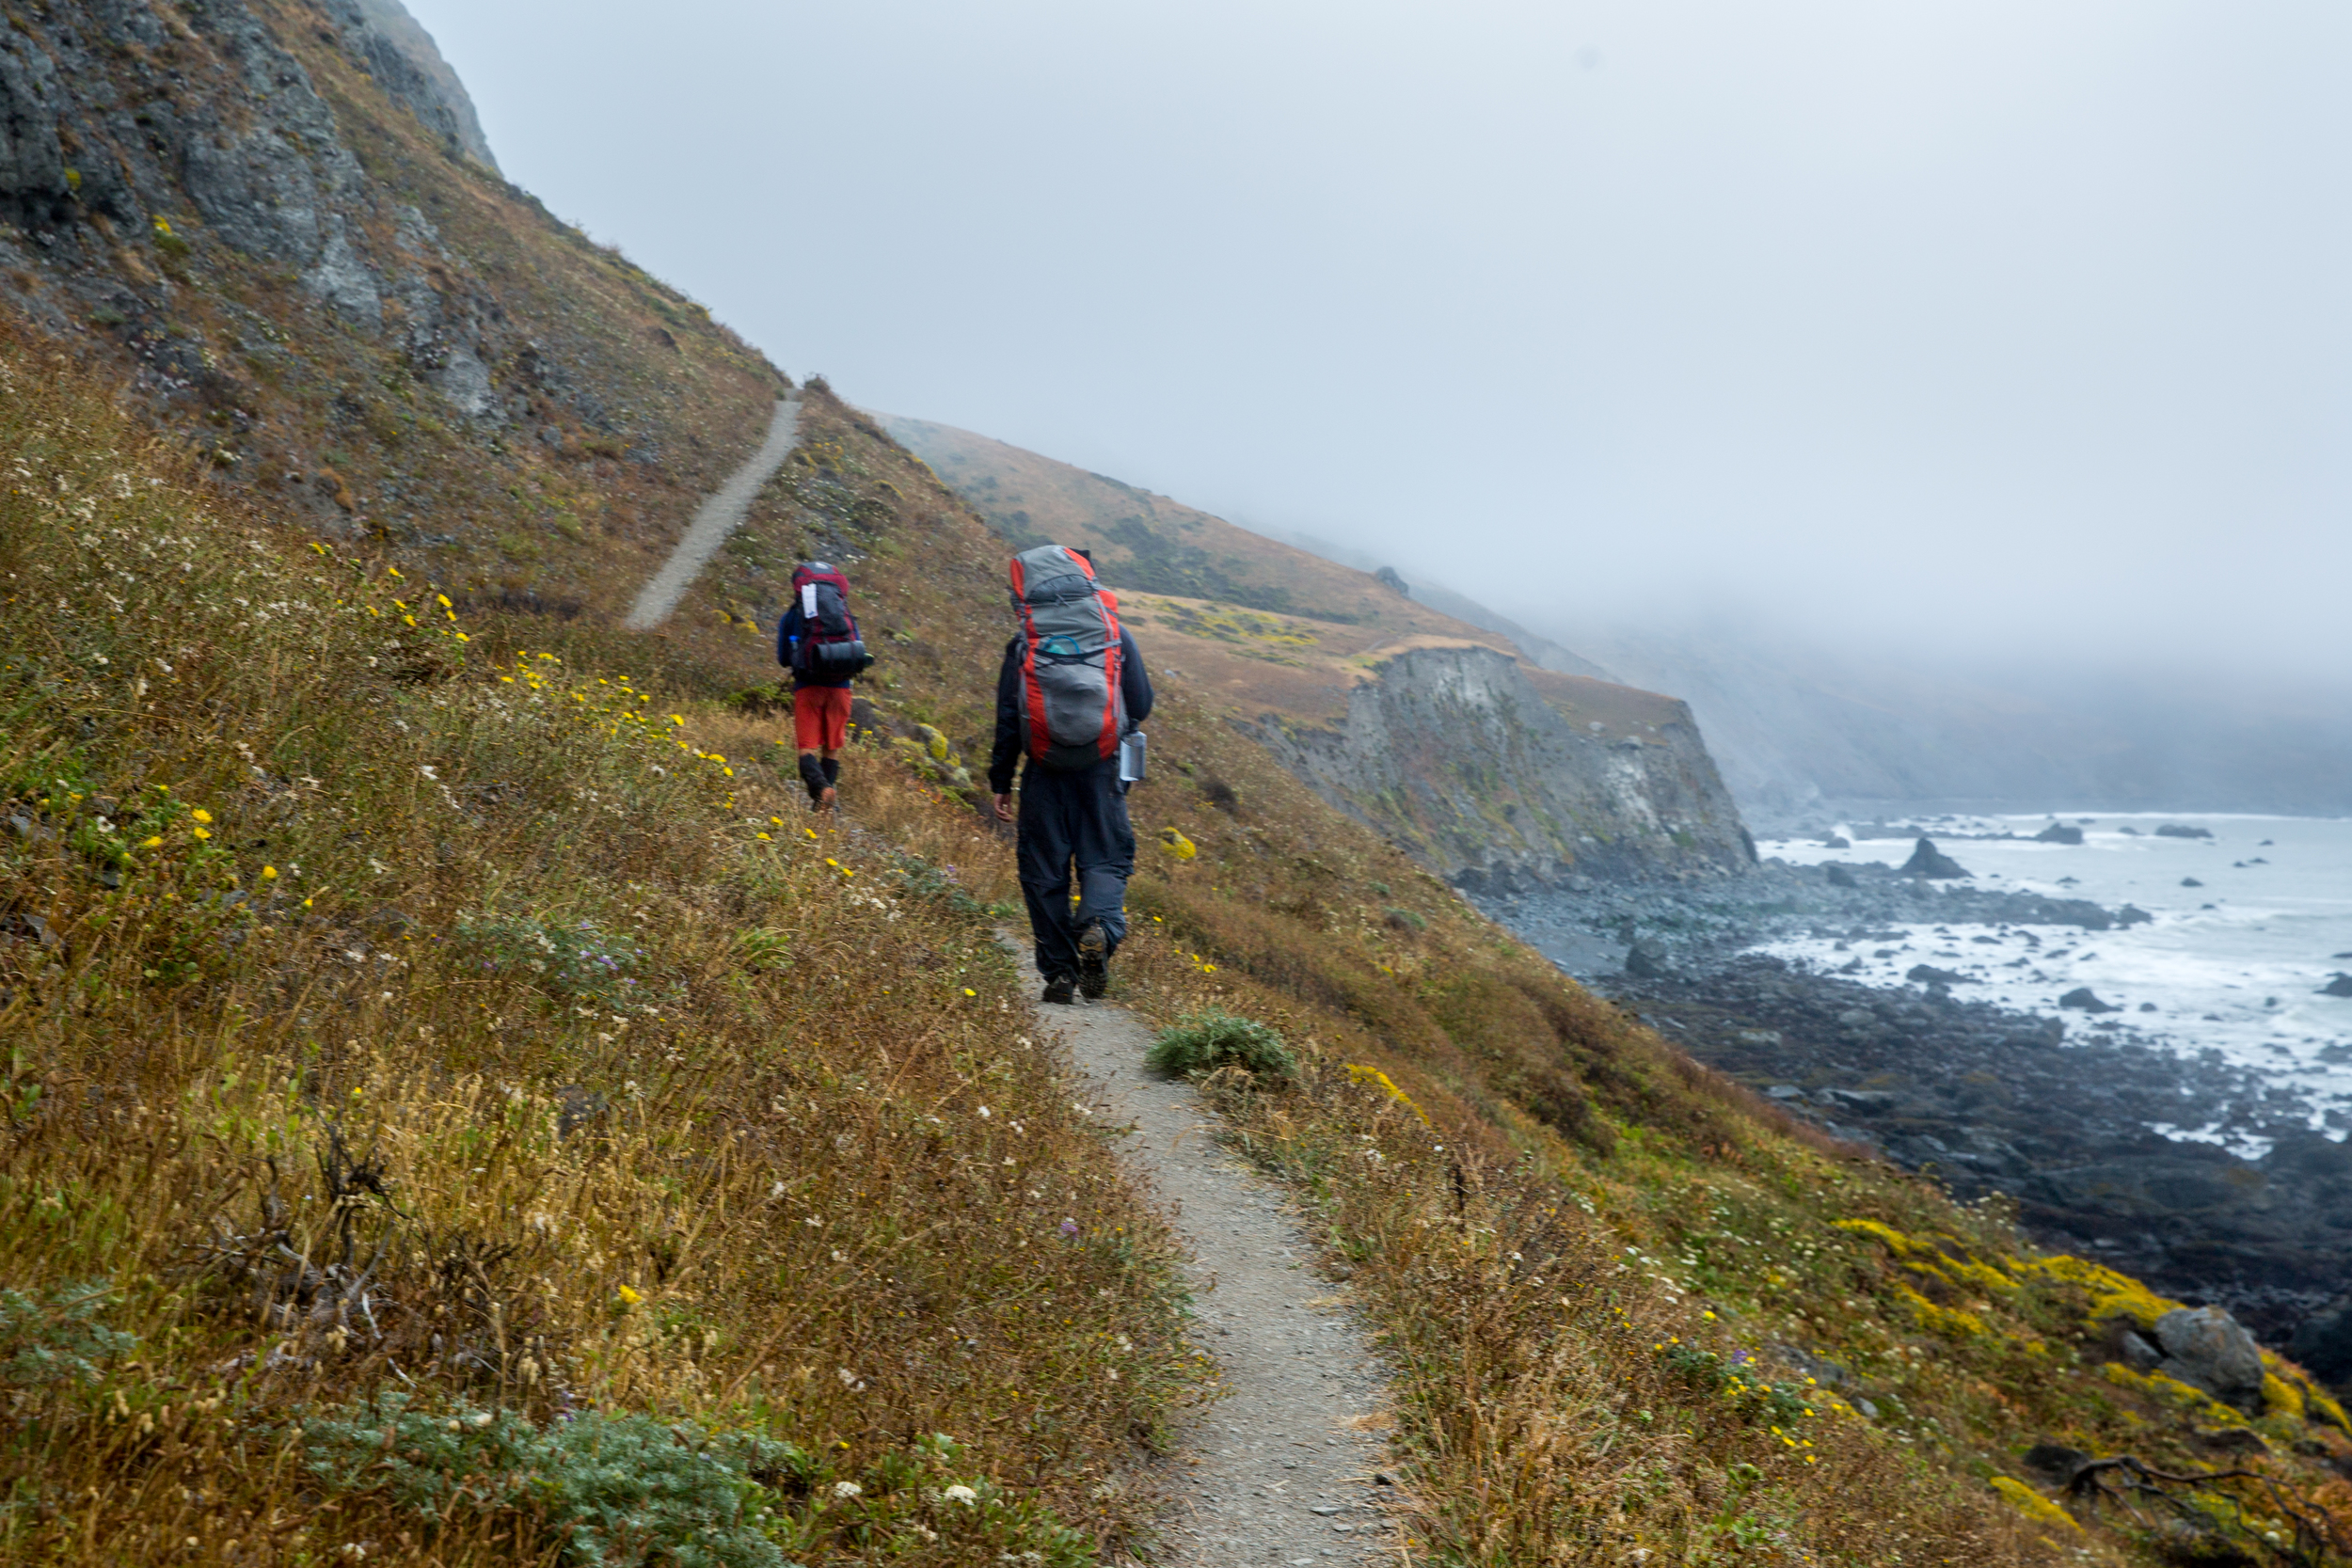 CR0A9013_CALIFORNIA_LOSTCOAST_HIKING_ROB.jpg